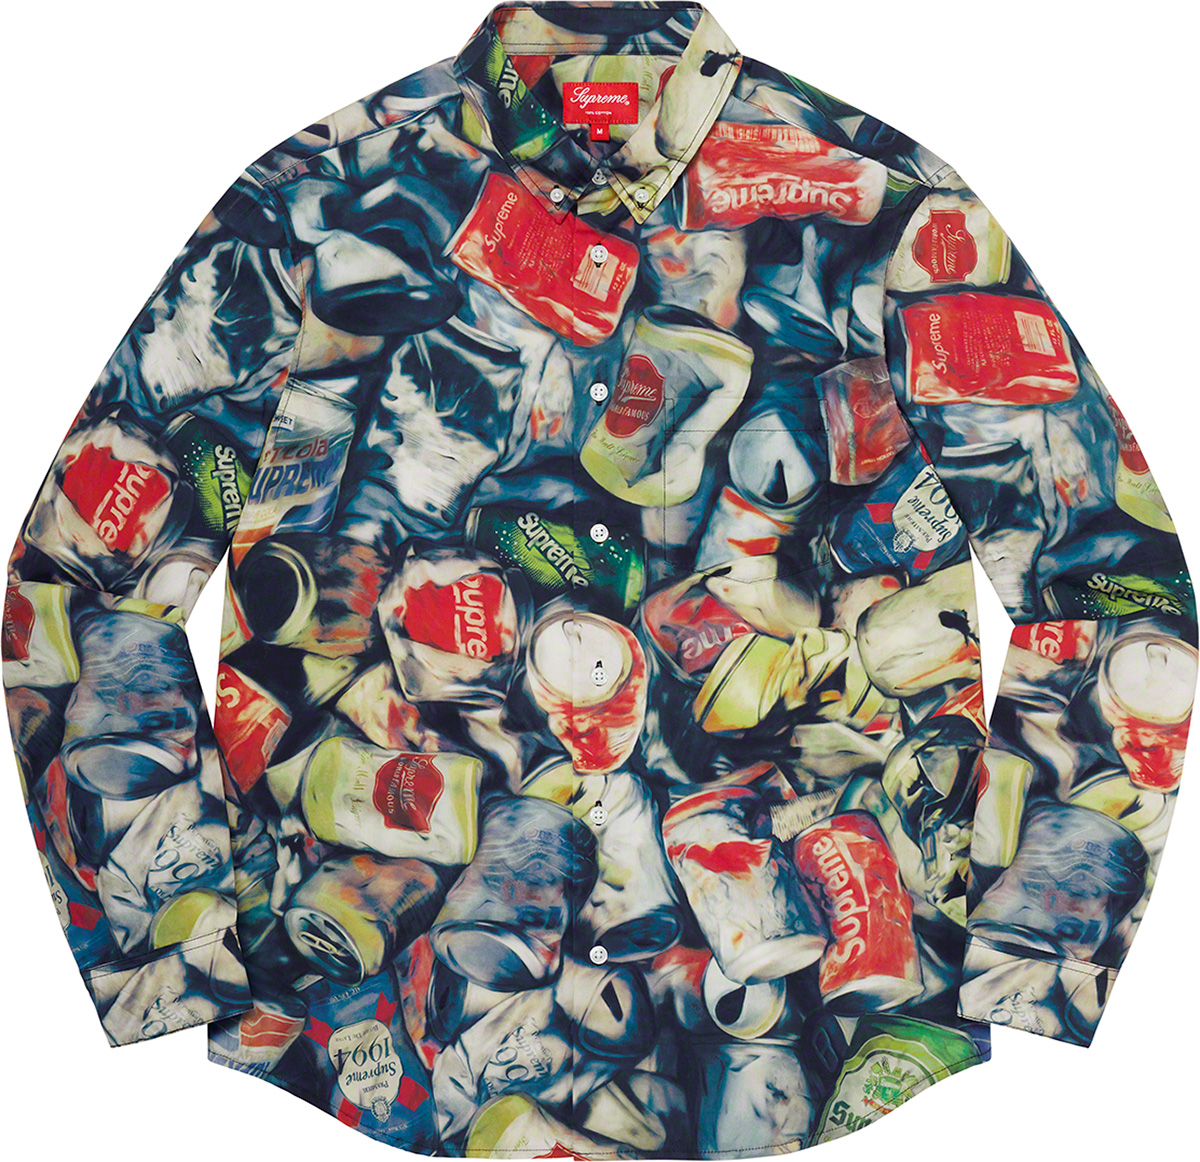 supreme-21ss-spring-summer-cans-shirt